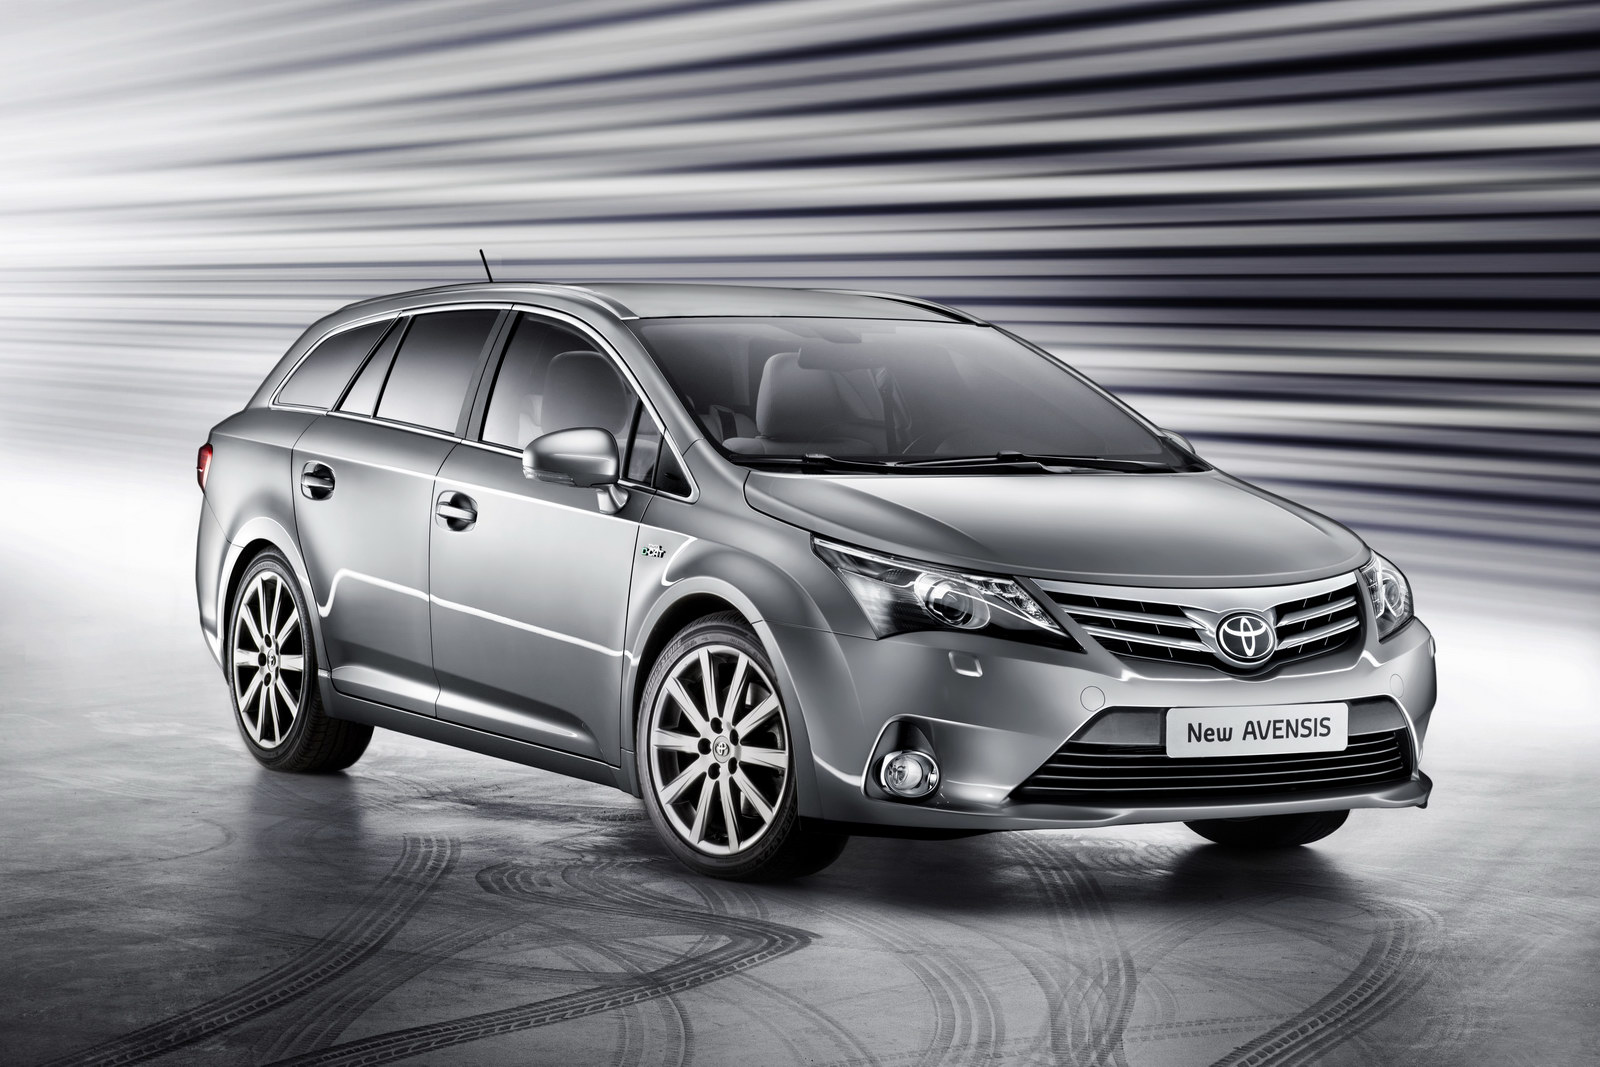 2012 Toyota Avensis 3 Production of the New 2012 Avensis